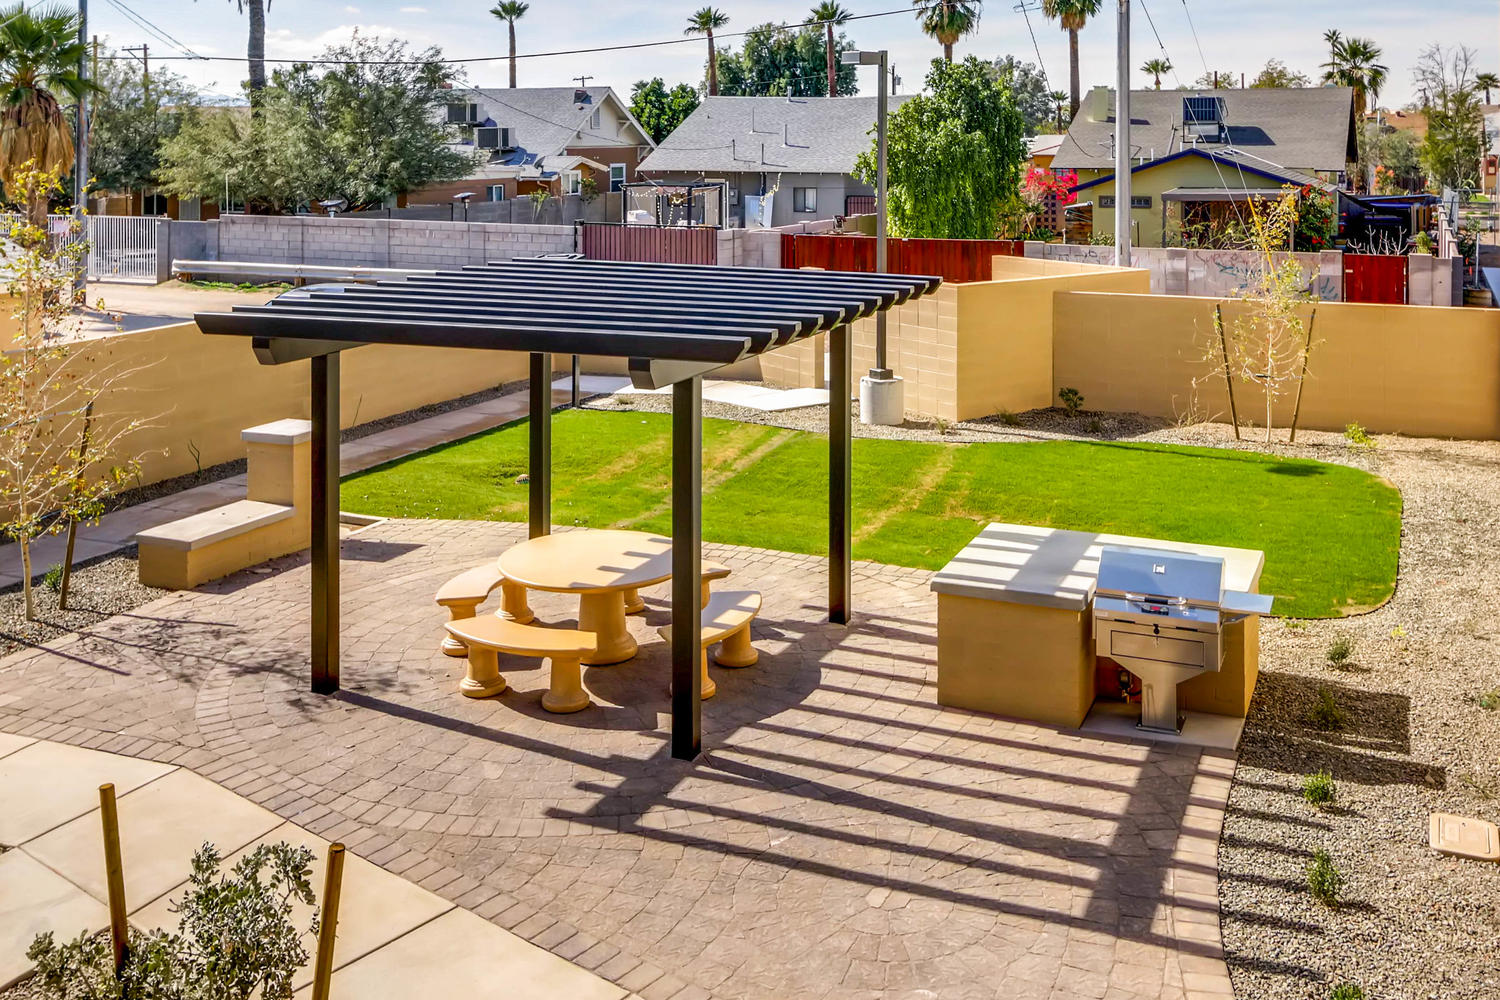 820 N 8th Ave Unit 21 Phoenix-large-070-46-Community Area Park-1500x1000-72dpi.jpg